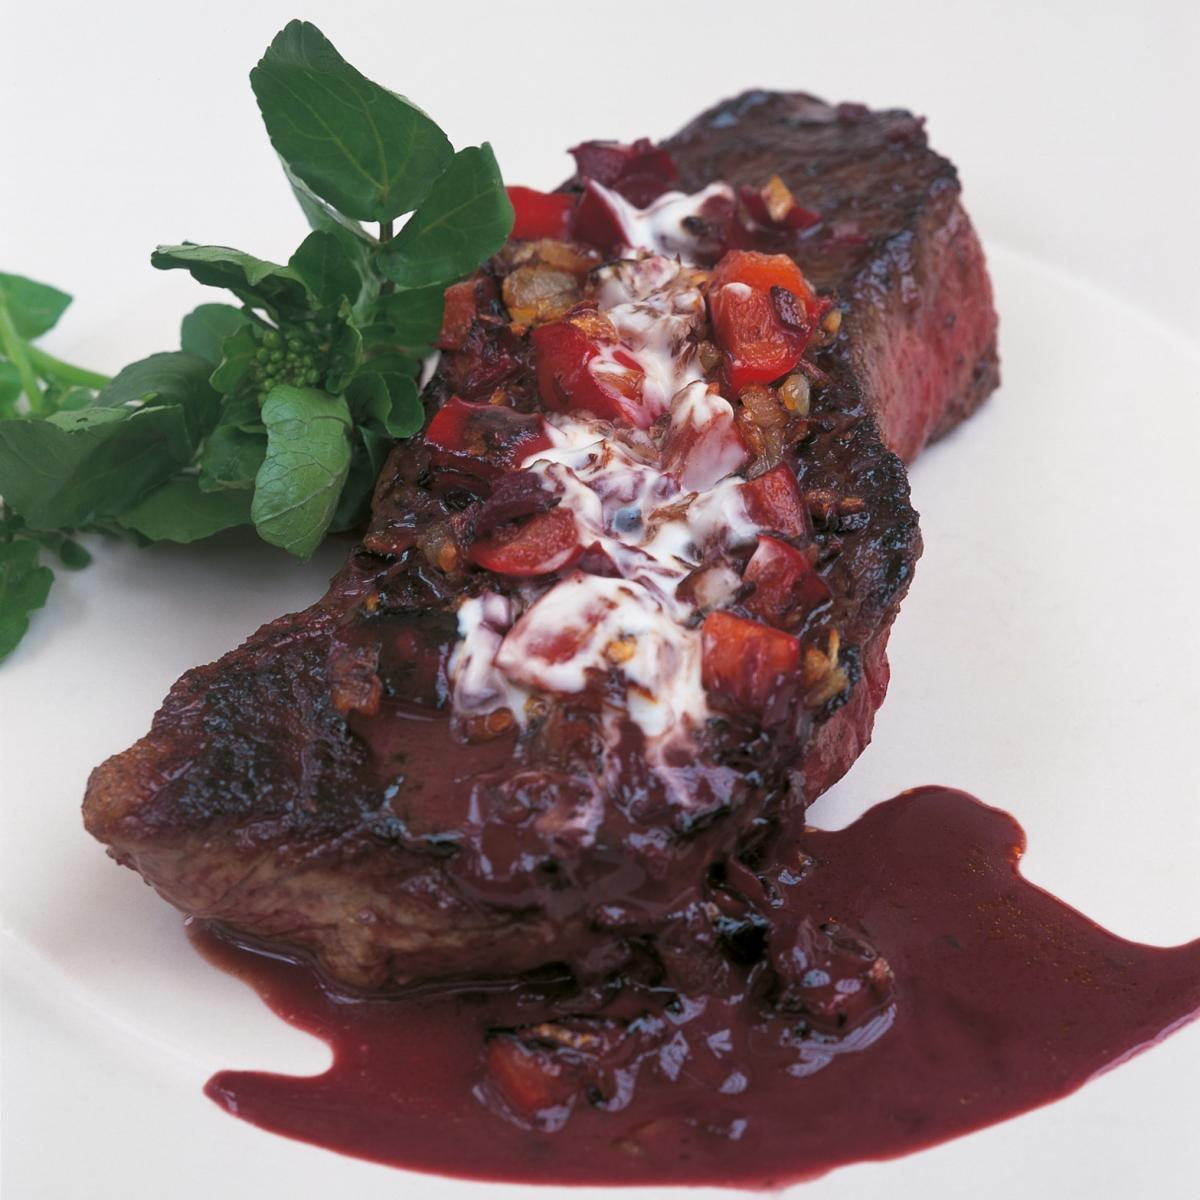 A picture of Delia's Entrecote Hongroise recipe